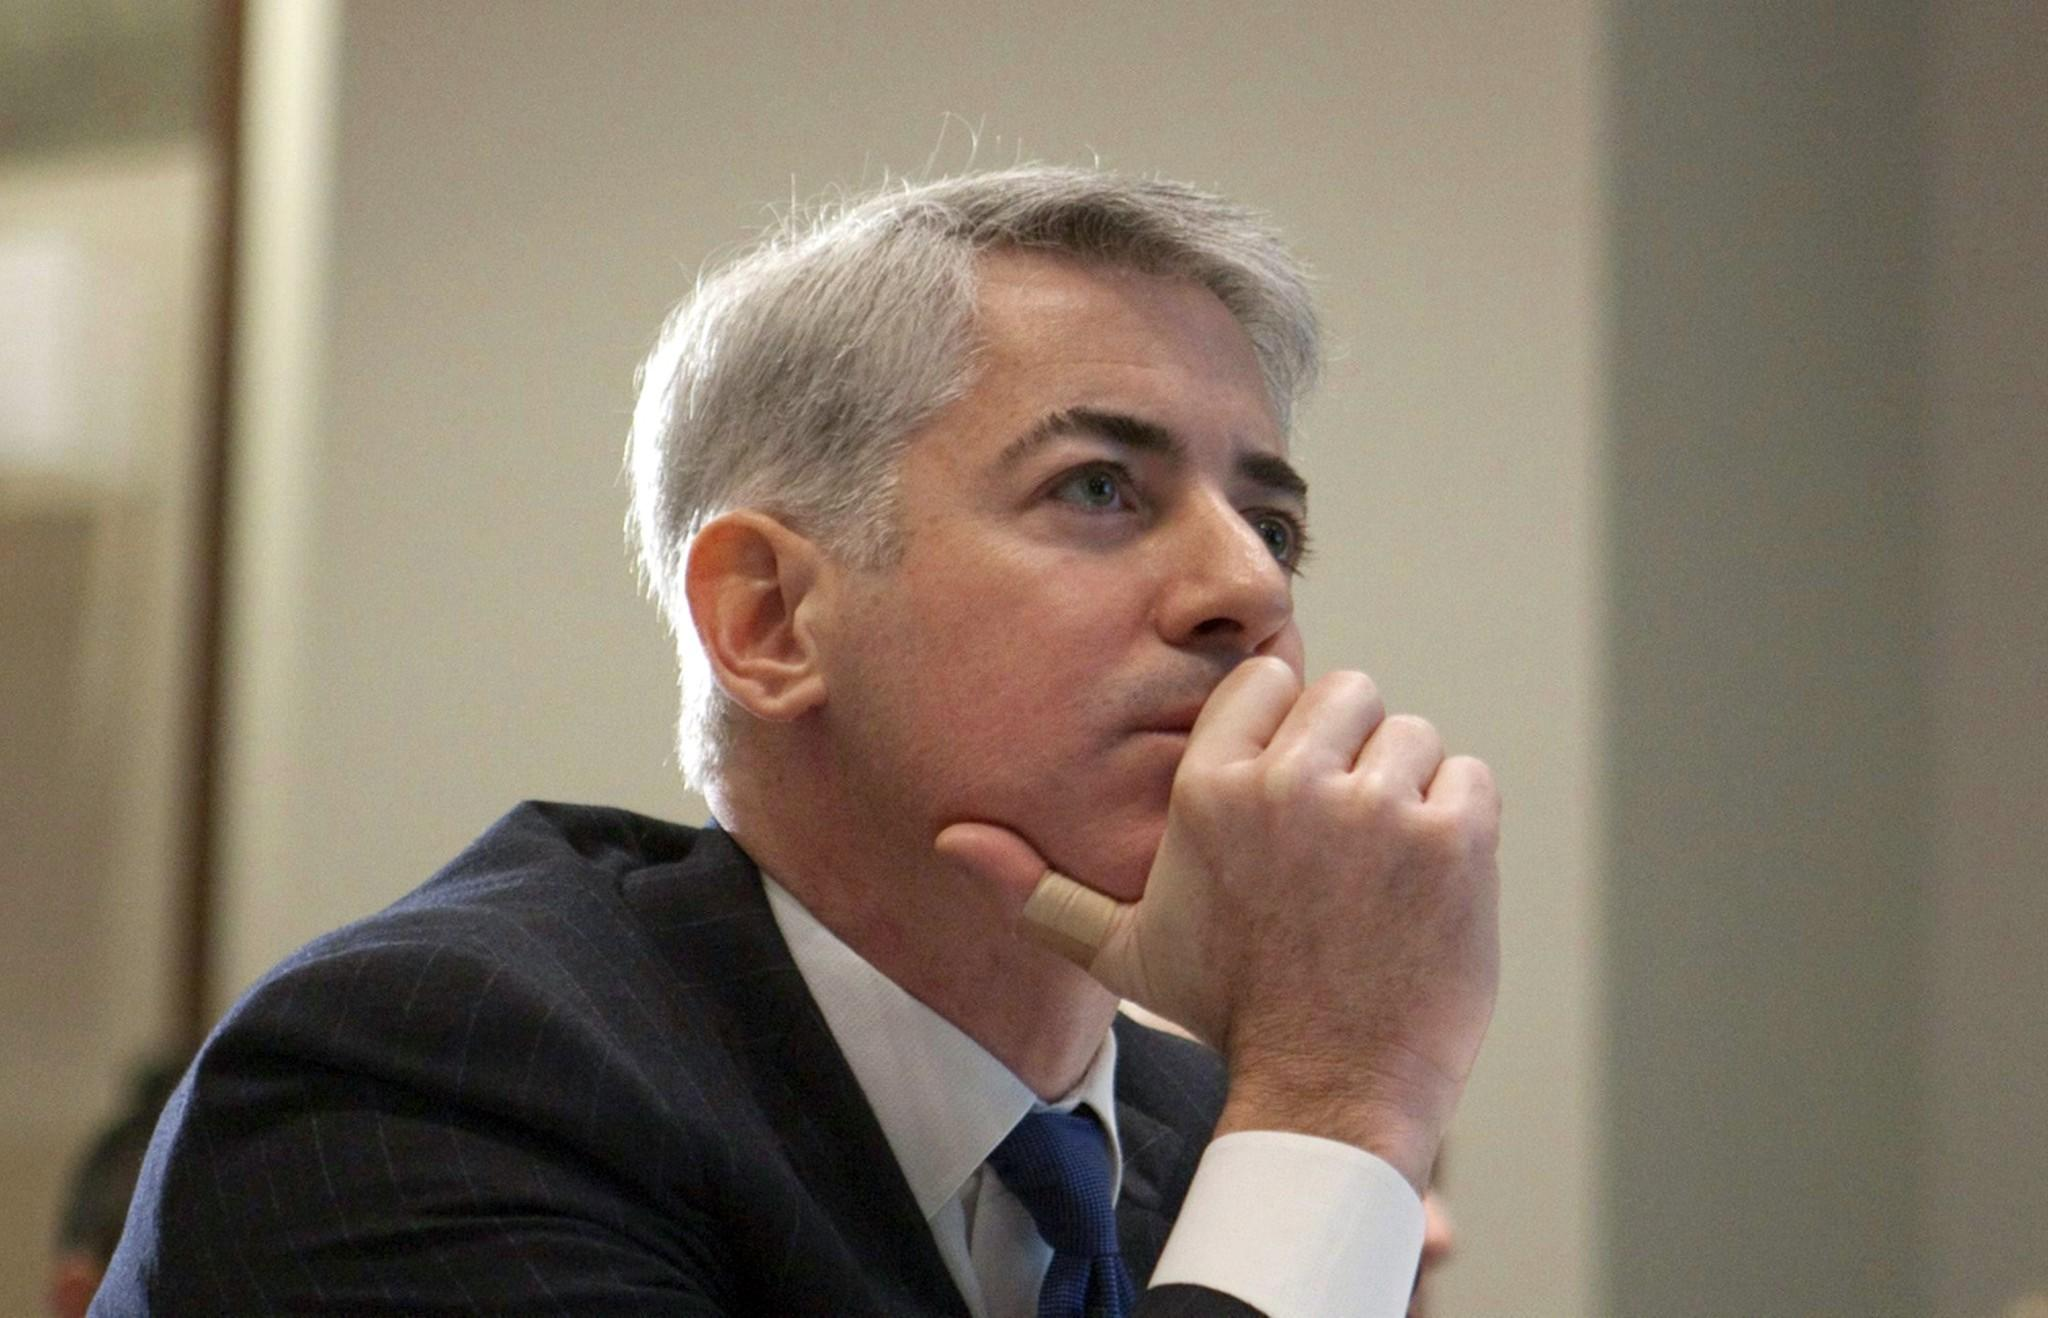 Valeant Pharmaceuticals and activist investor Bill Ackman have unveiled details of their offer to buy Botox maker Allergan in a cash-and-stock deal worth about $45.6 billion.